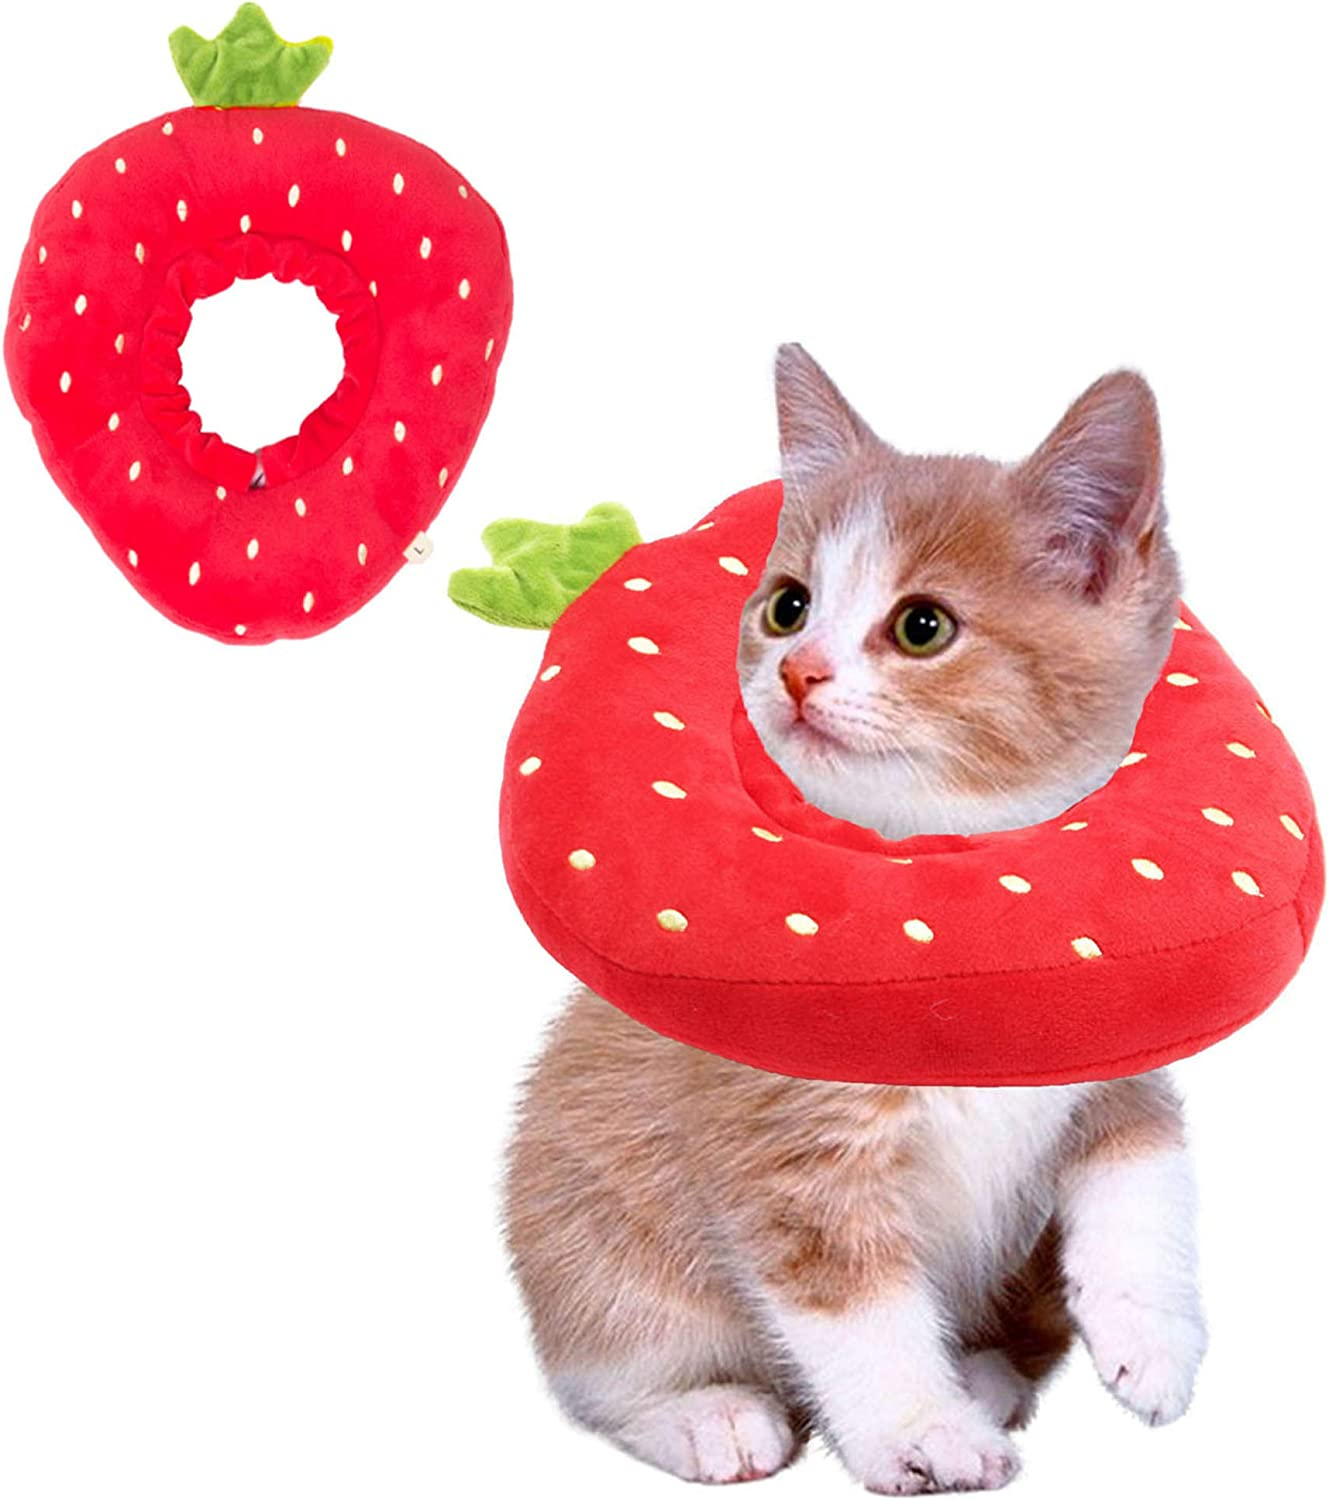 ADOGGYGO Adjustable Cat Recovery Collar Cute Neck Ranking Oakland Mall TOP18 Co Strawberry